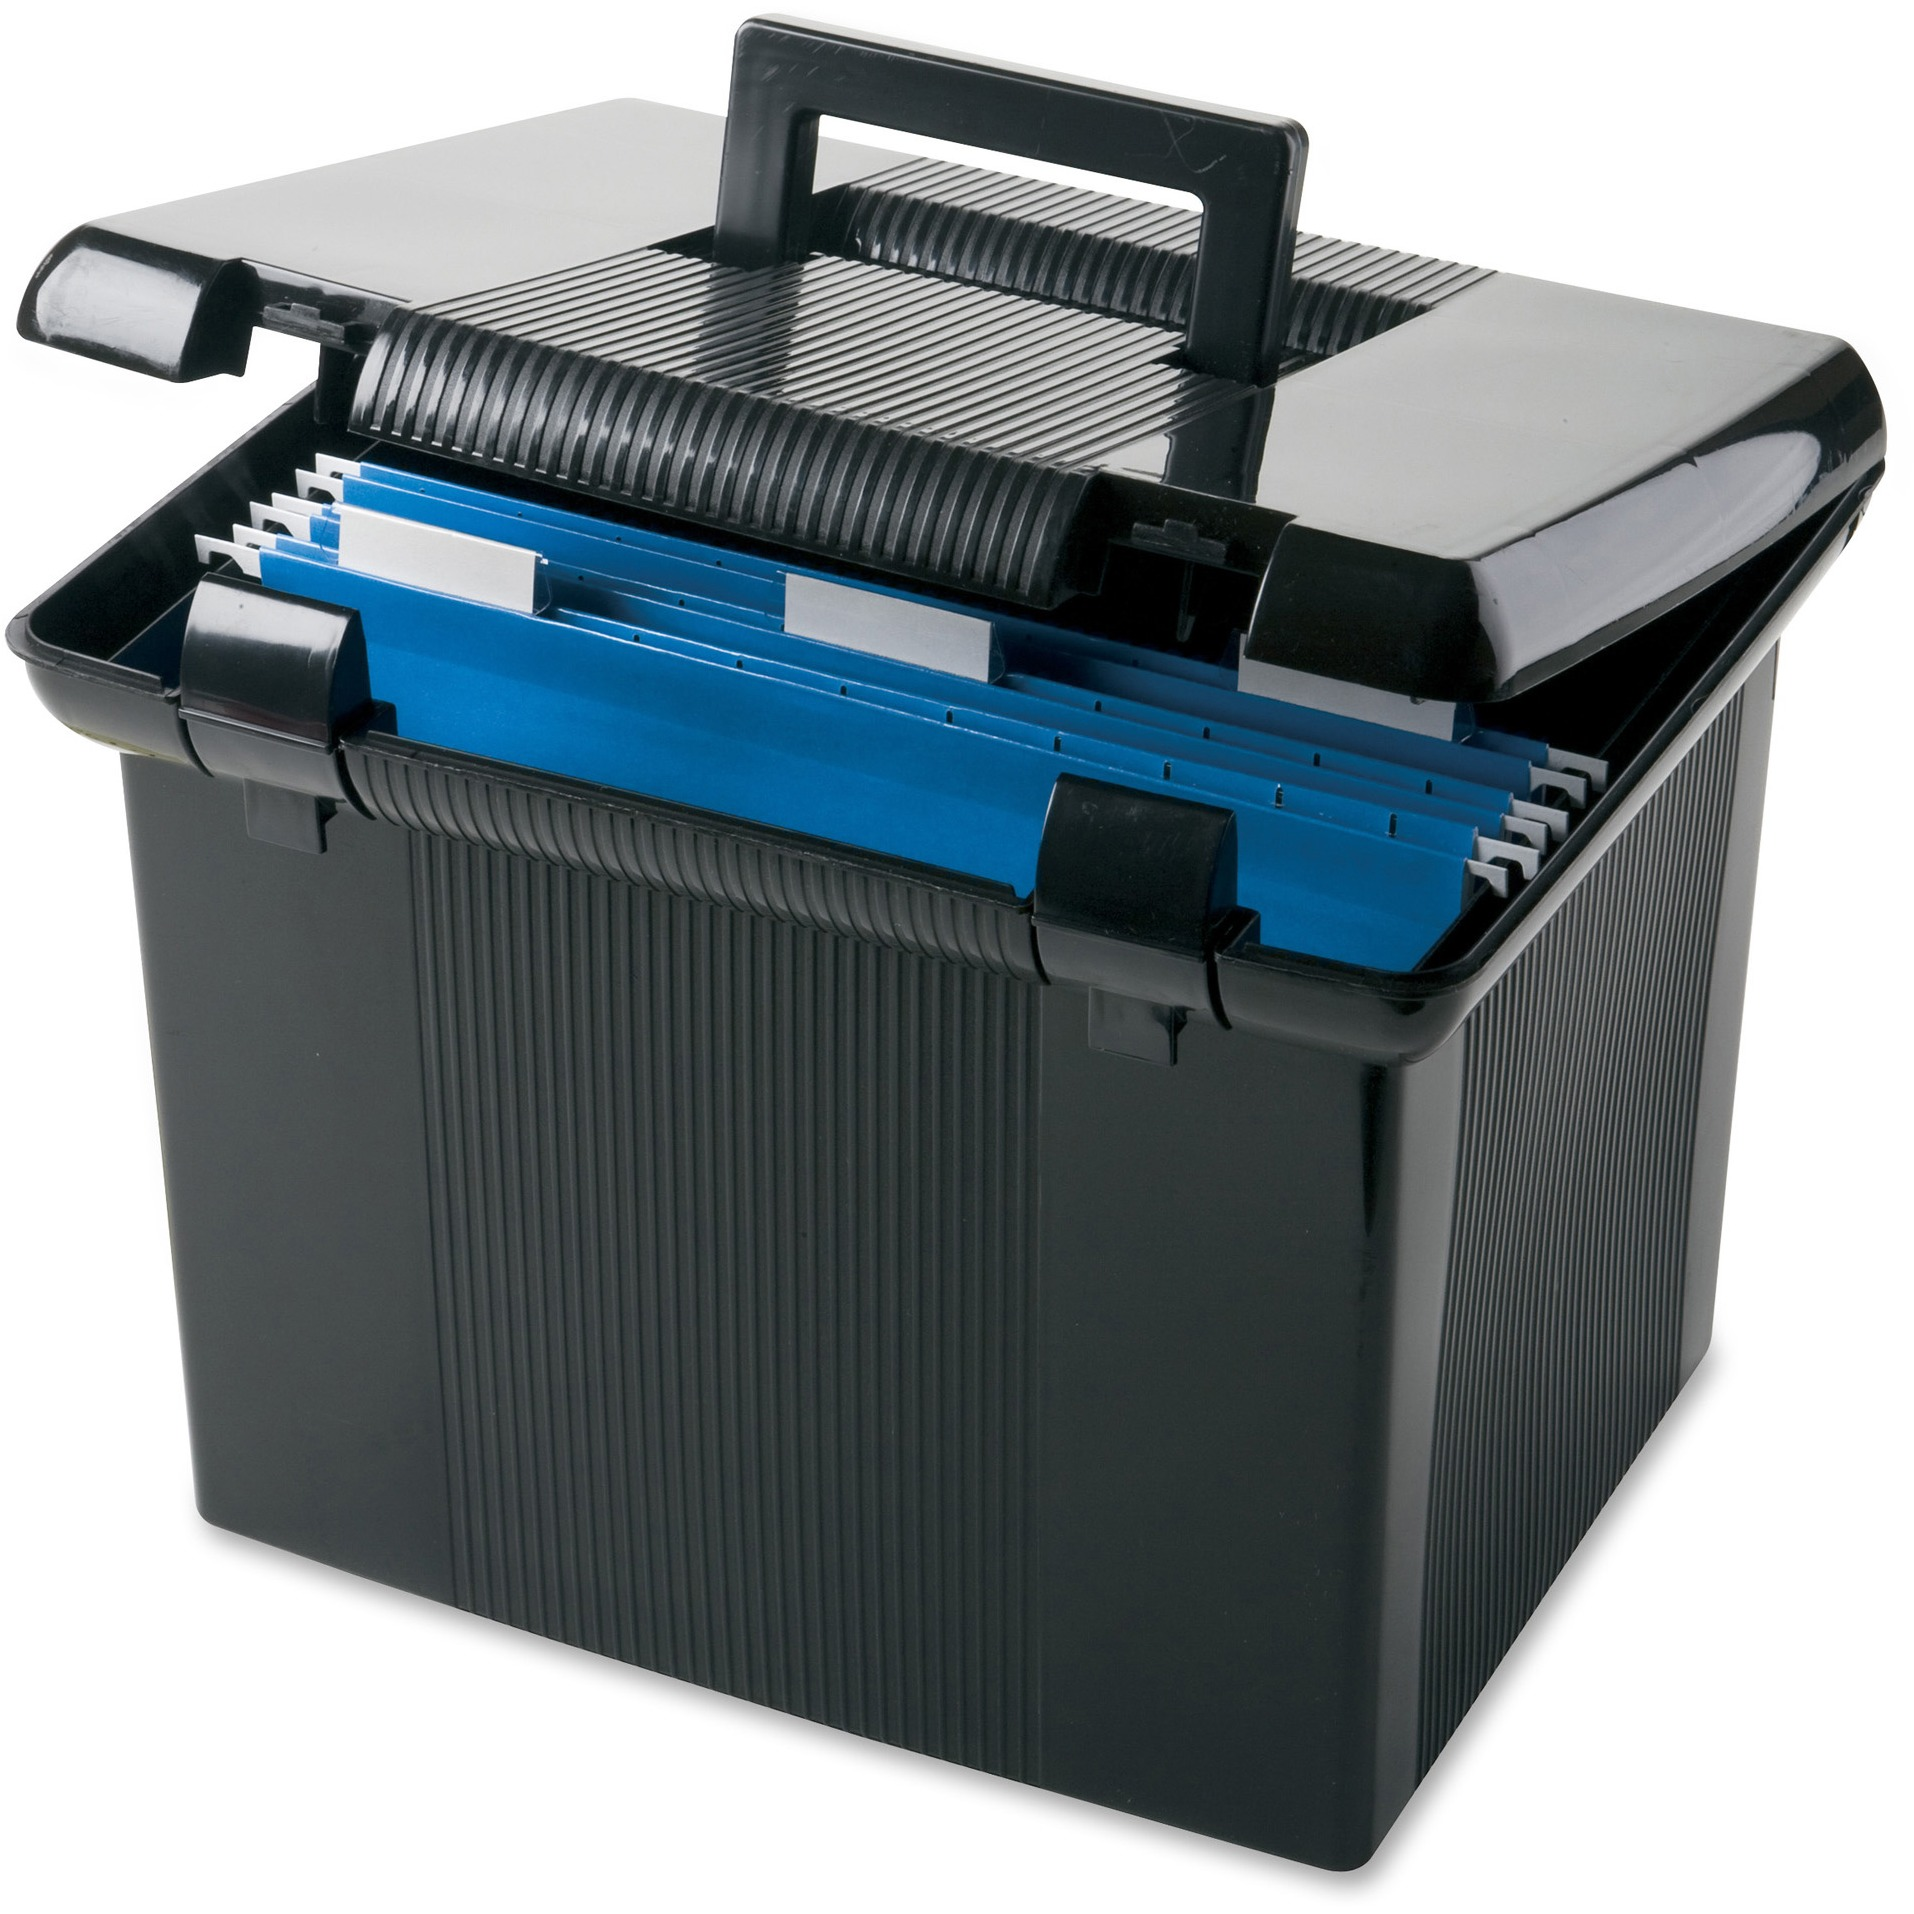 Pendaflex Portafile File Storage Box, Black, 1 Each (Quantity)